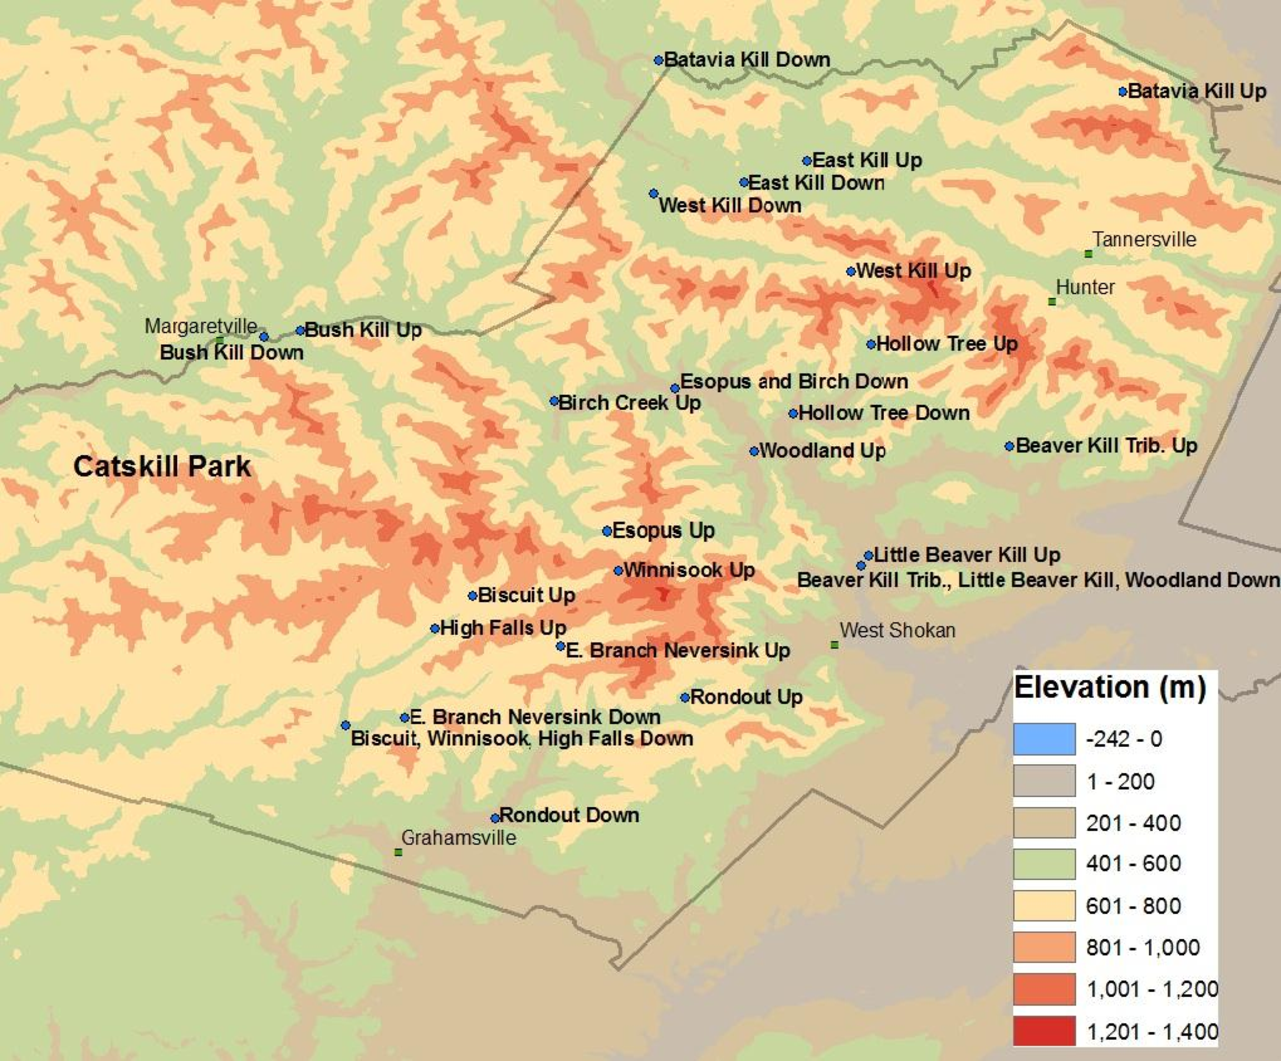 Figure 3 from Estimation of Solute Fluxes from Uned ... on canyon de chelly national monument map, new england park map, shawangunk ridge map, memphis park map, cranberry lake park map, devil's den state park map, ochlockonee river state park map, catskills on map, susquehanna state park trail map, boston park map, fort lee park map, caledonia state park trail map, bill baggs cape florida state park map, eastern catskills map, colton point state park map, the catskills map, van buren park map, esopus creek map, brown county state park map, rocky mountain national park trail map,